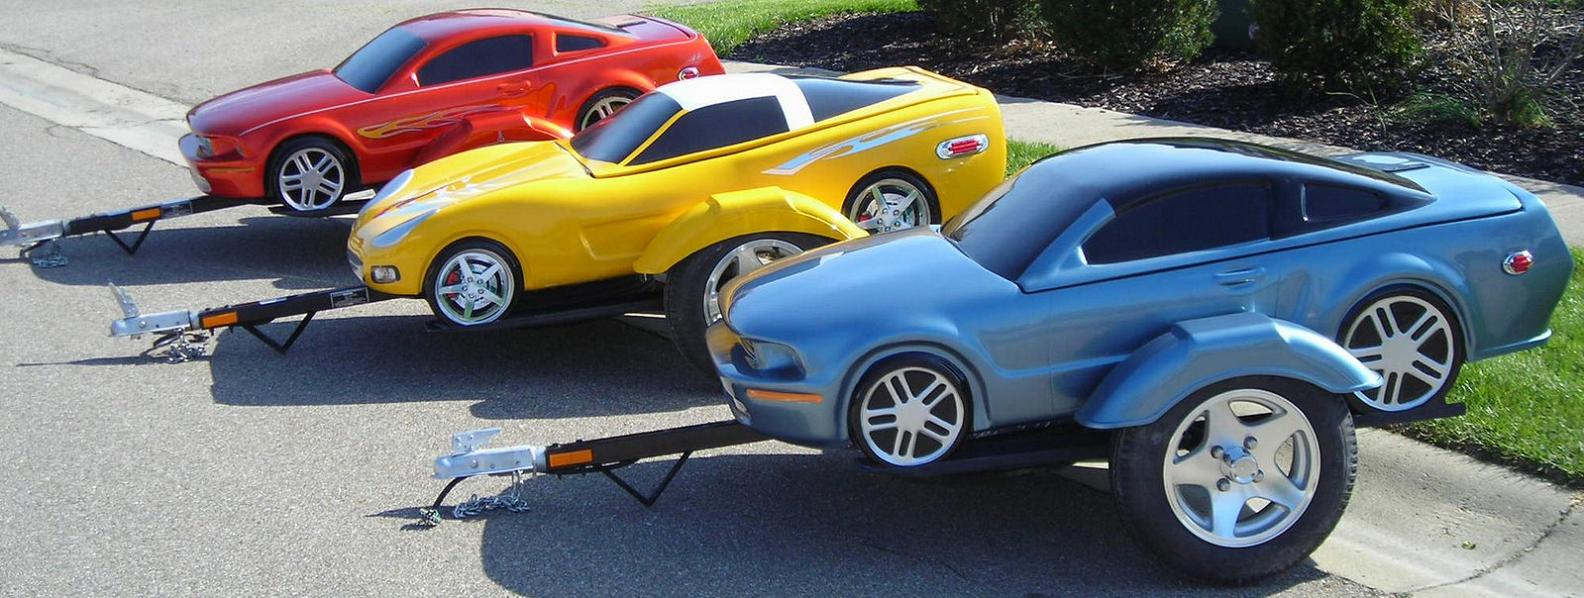 Car Towing Costs Uk